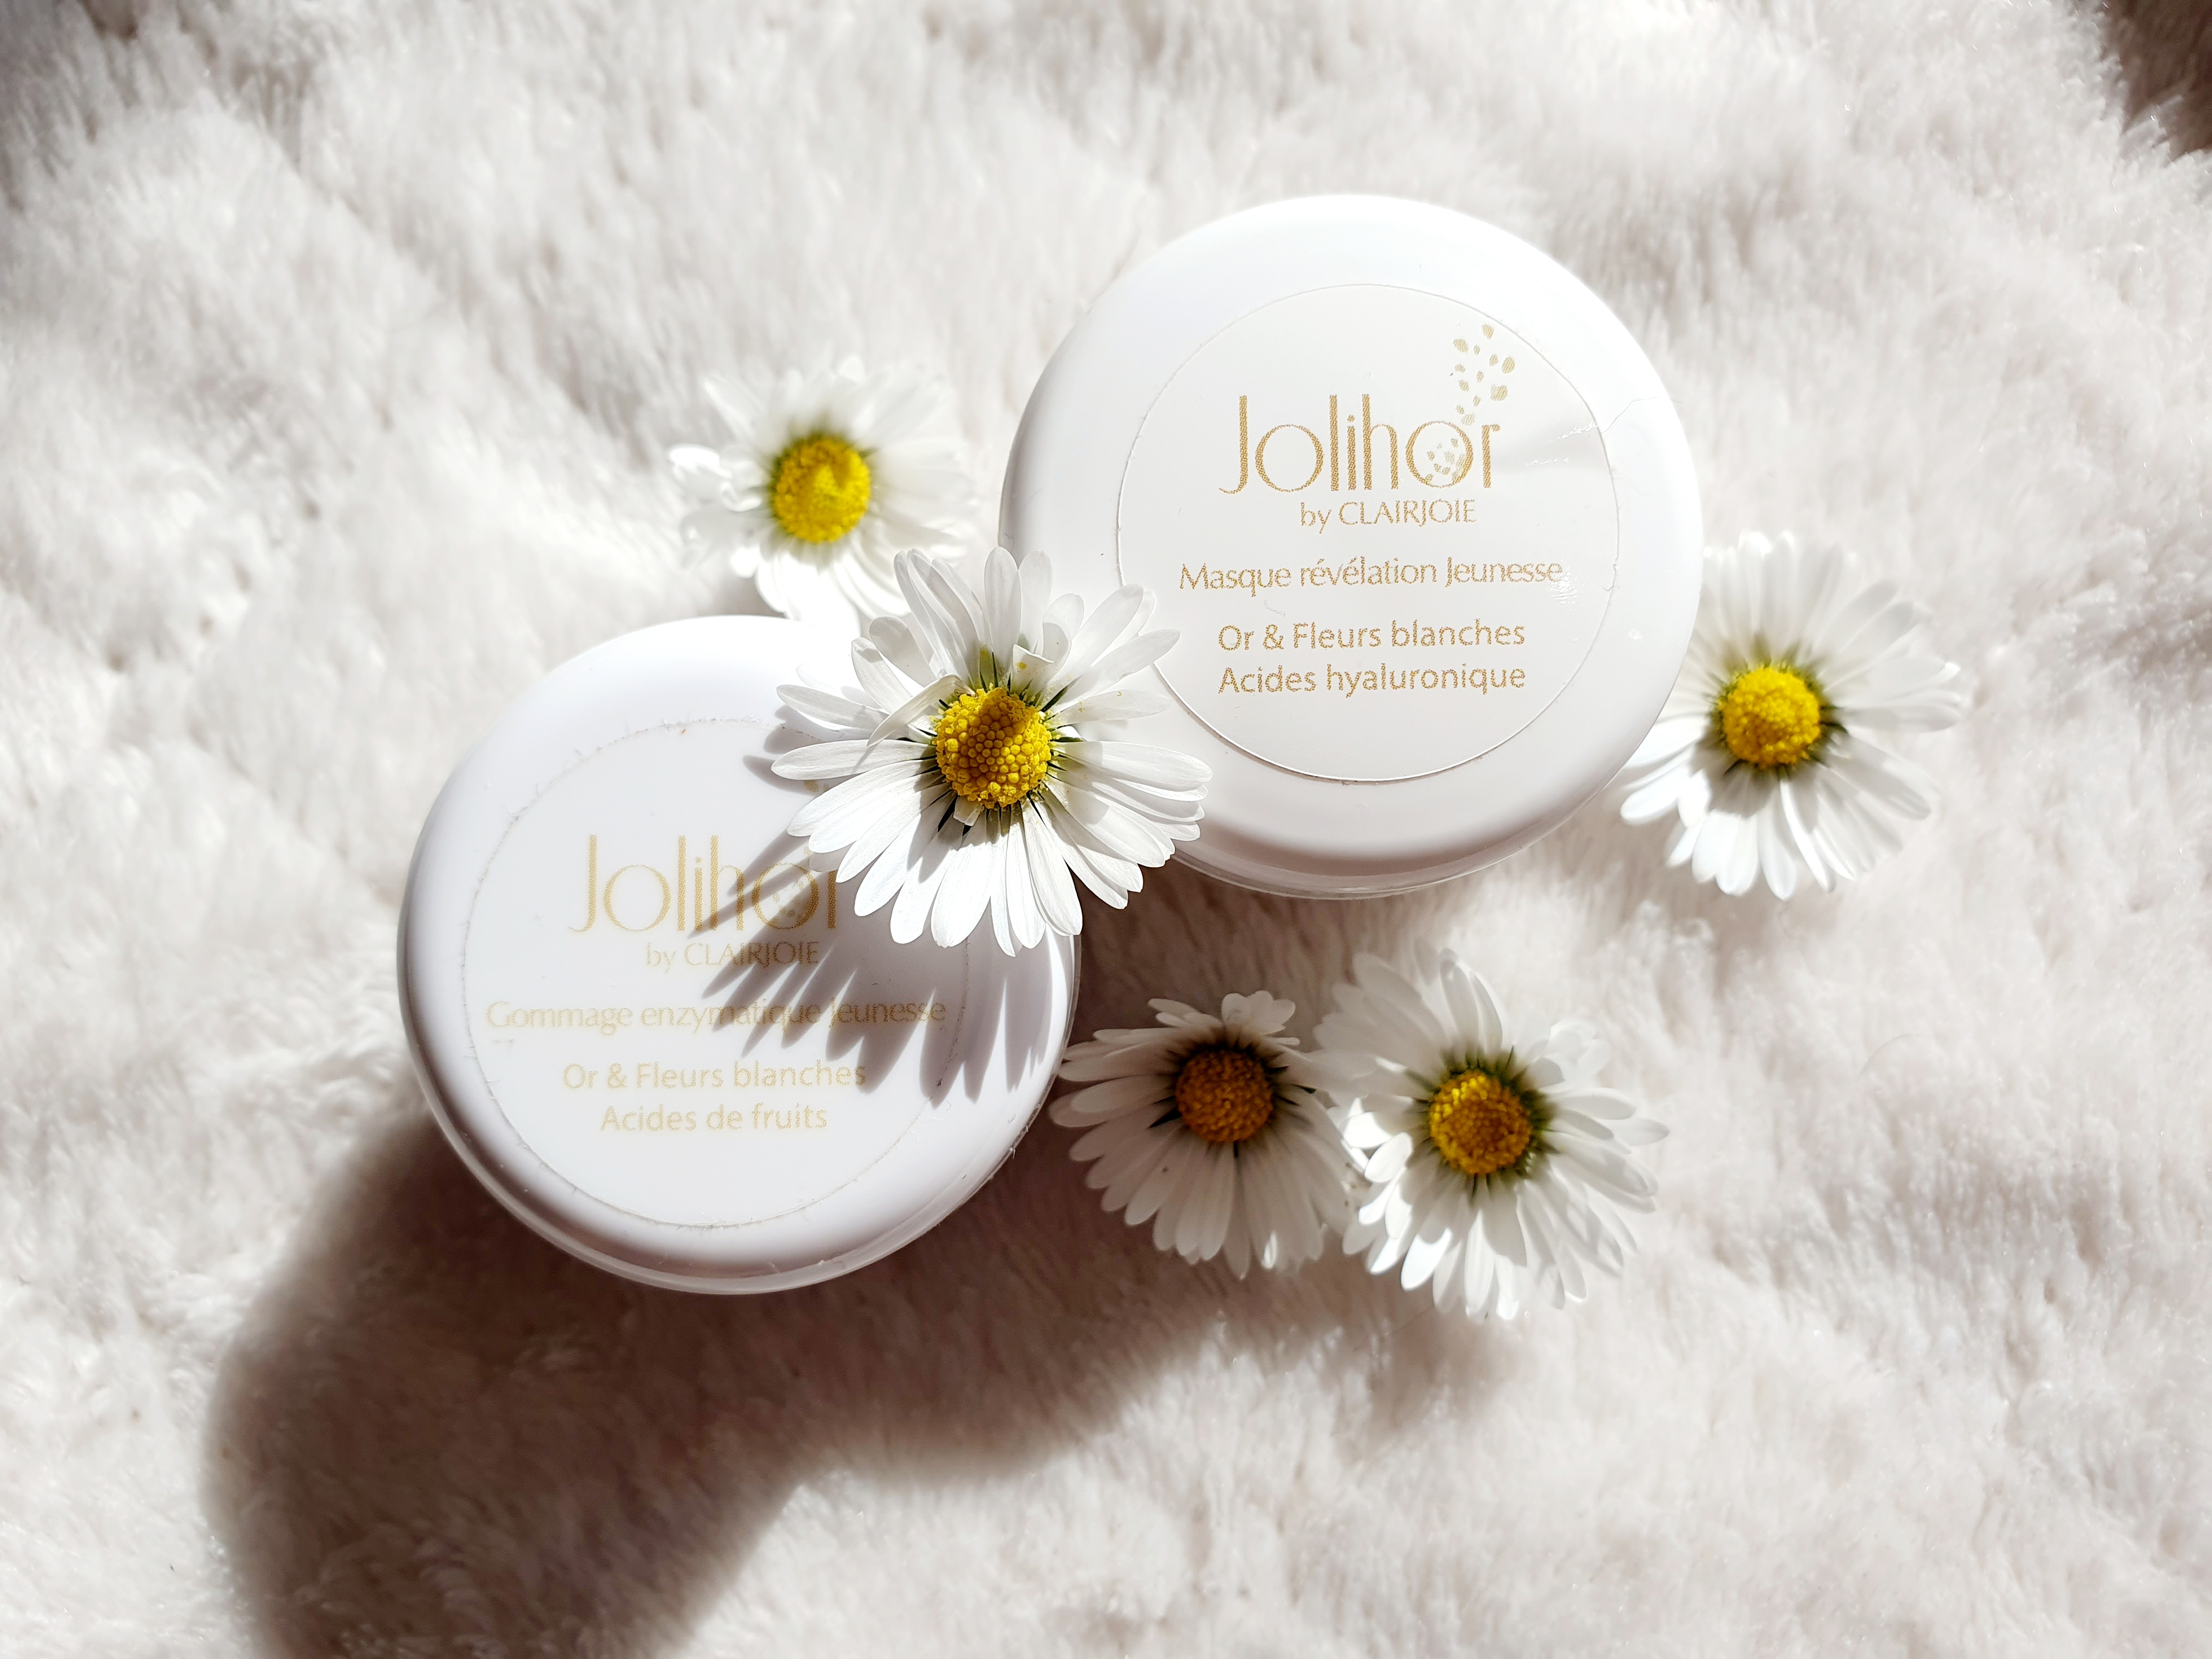 Clairjoie beauty products